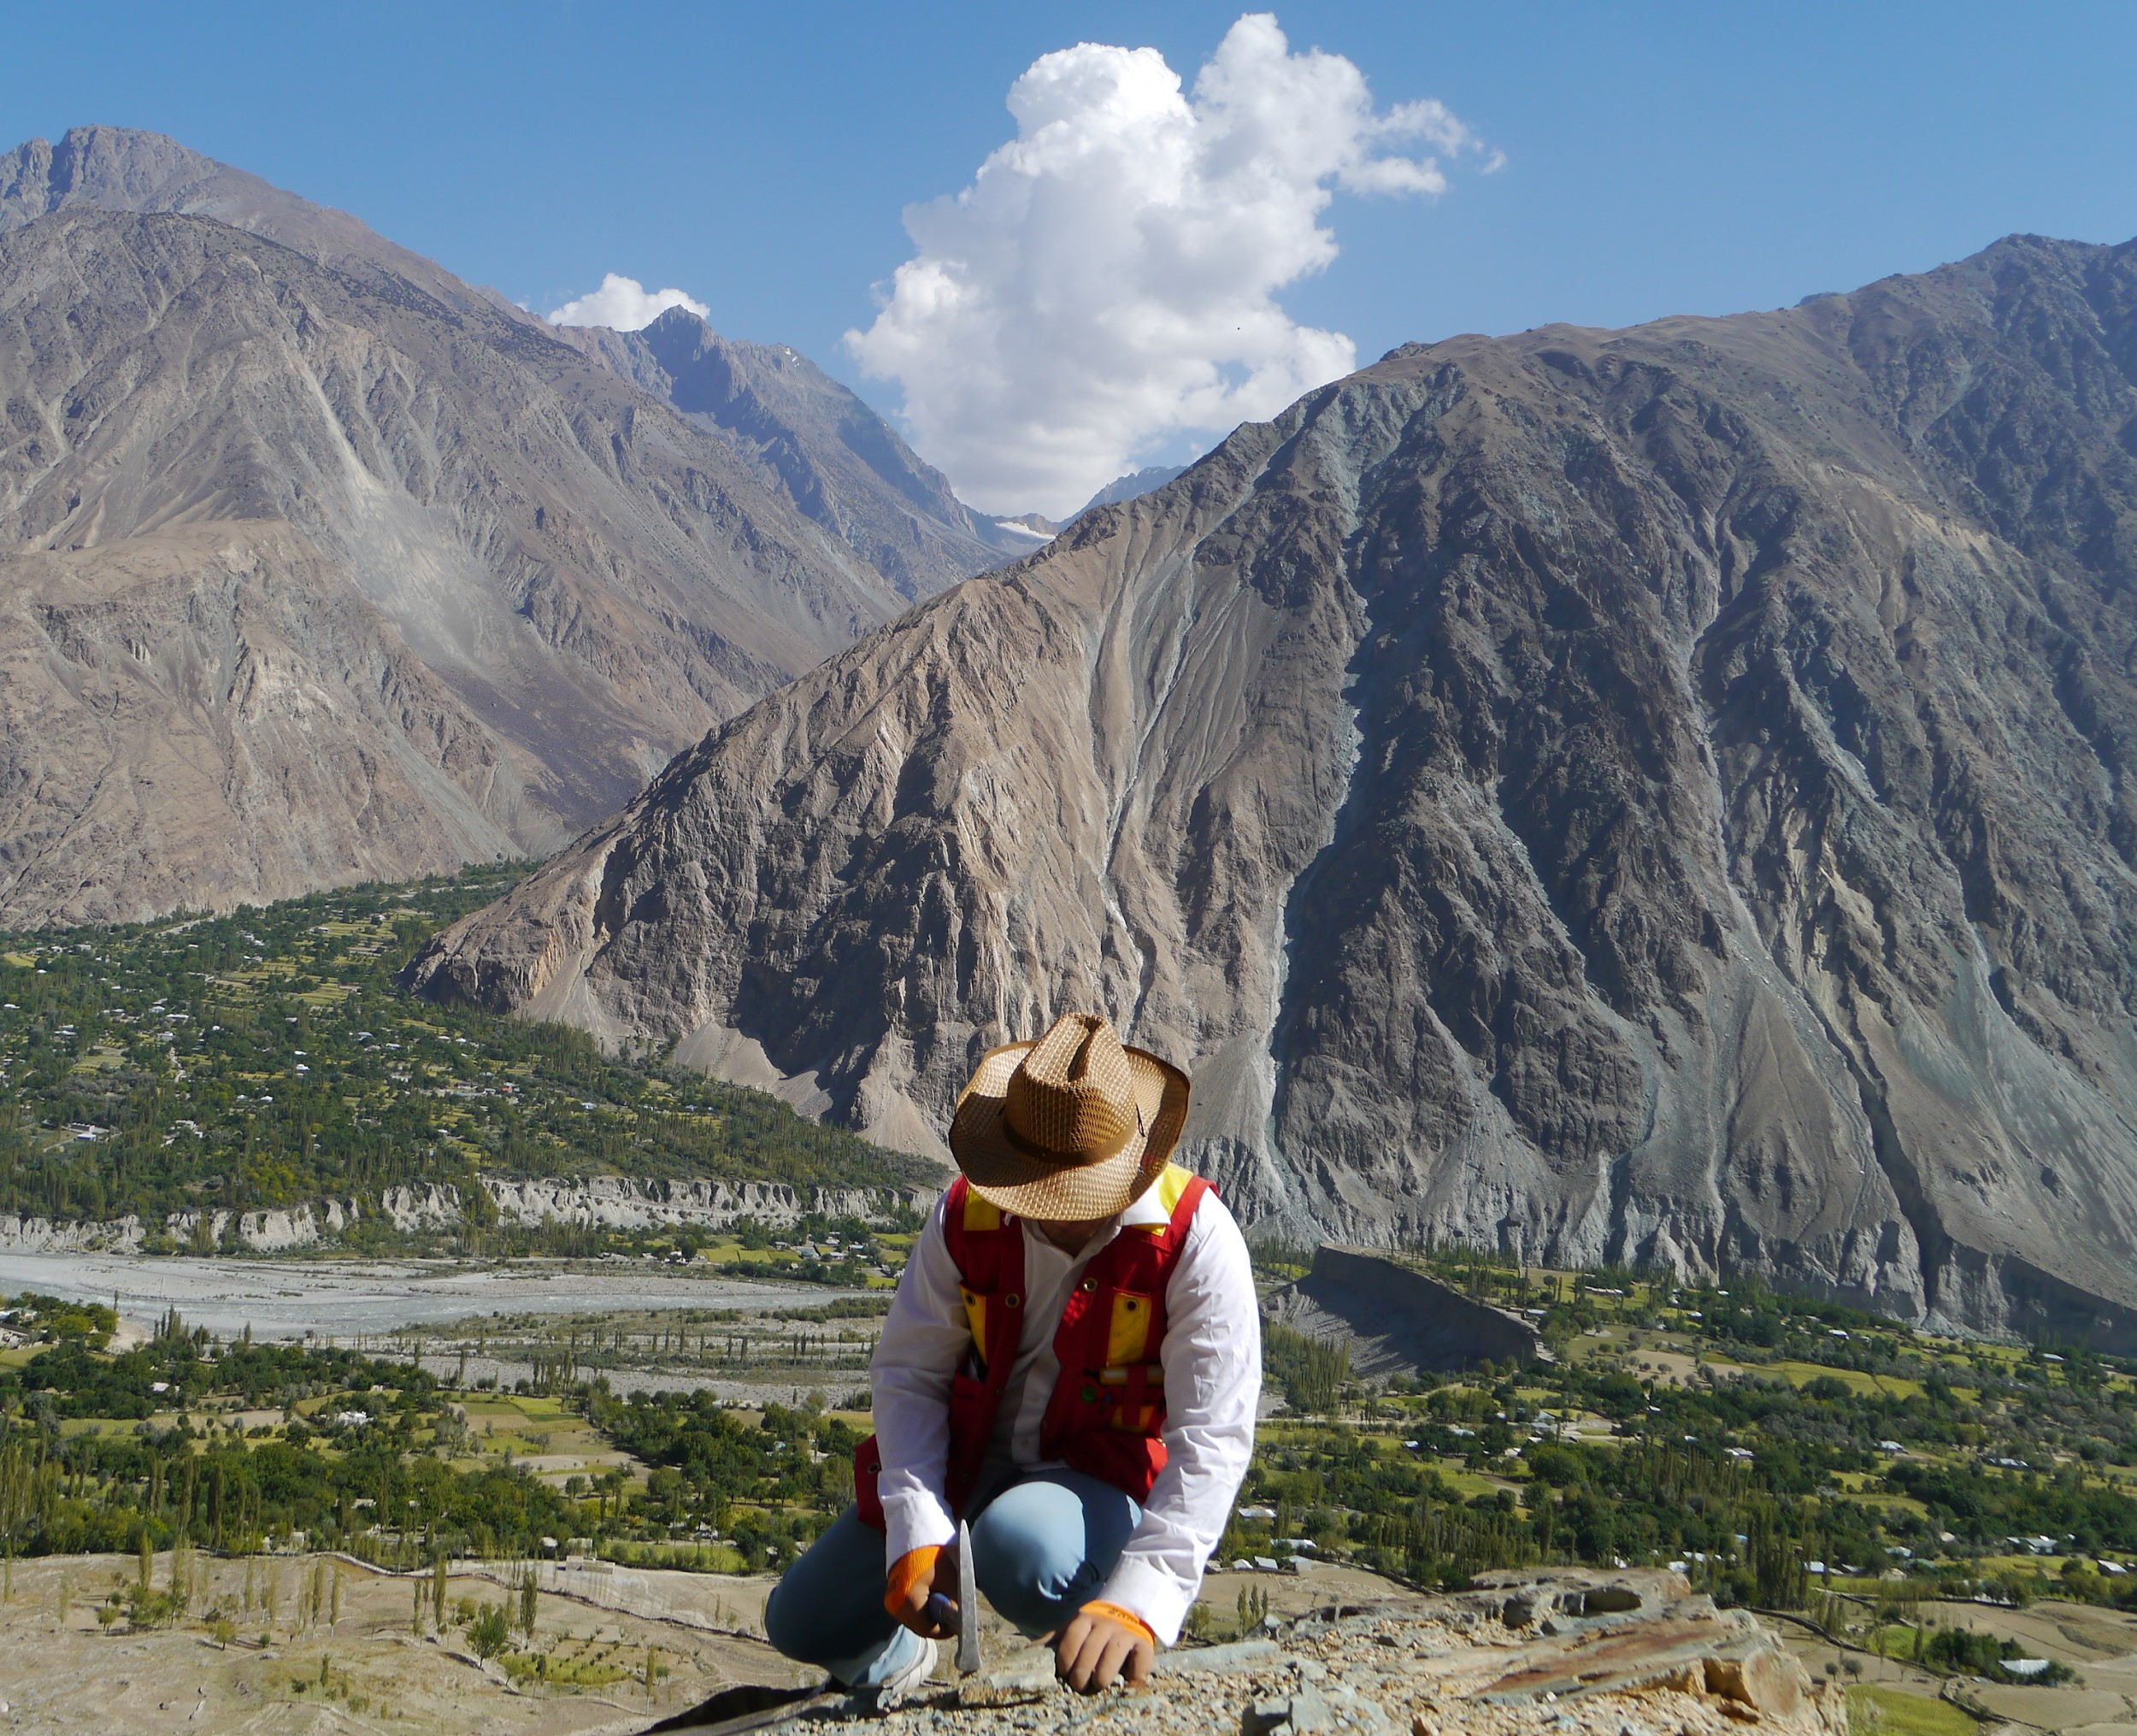 Ihaz Ahmad doing field work in Kohistan (photo by J Richards)